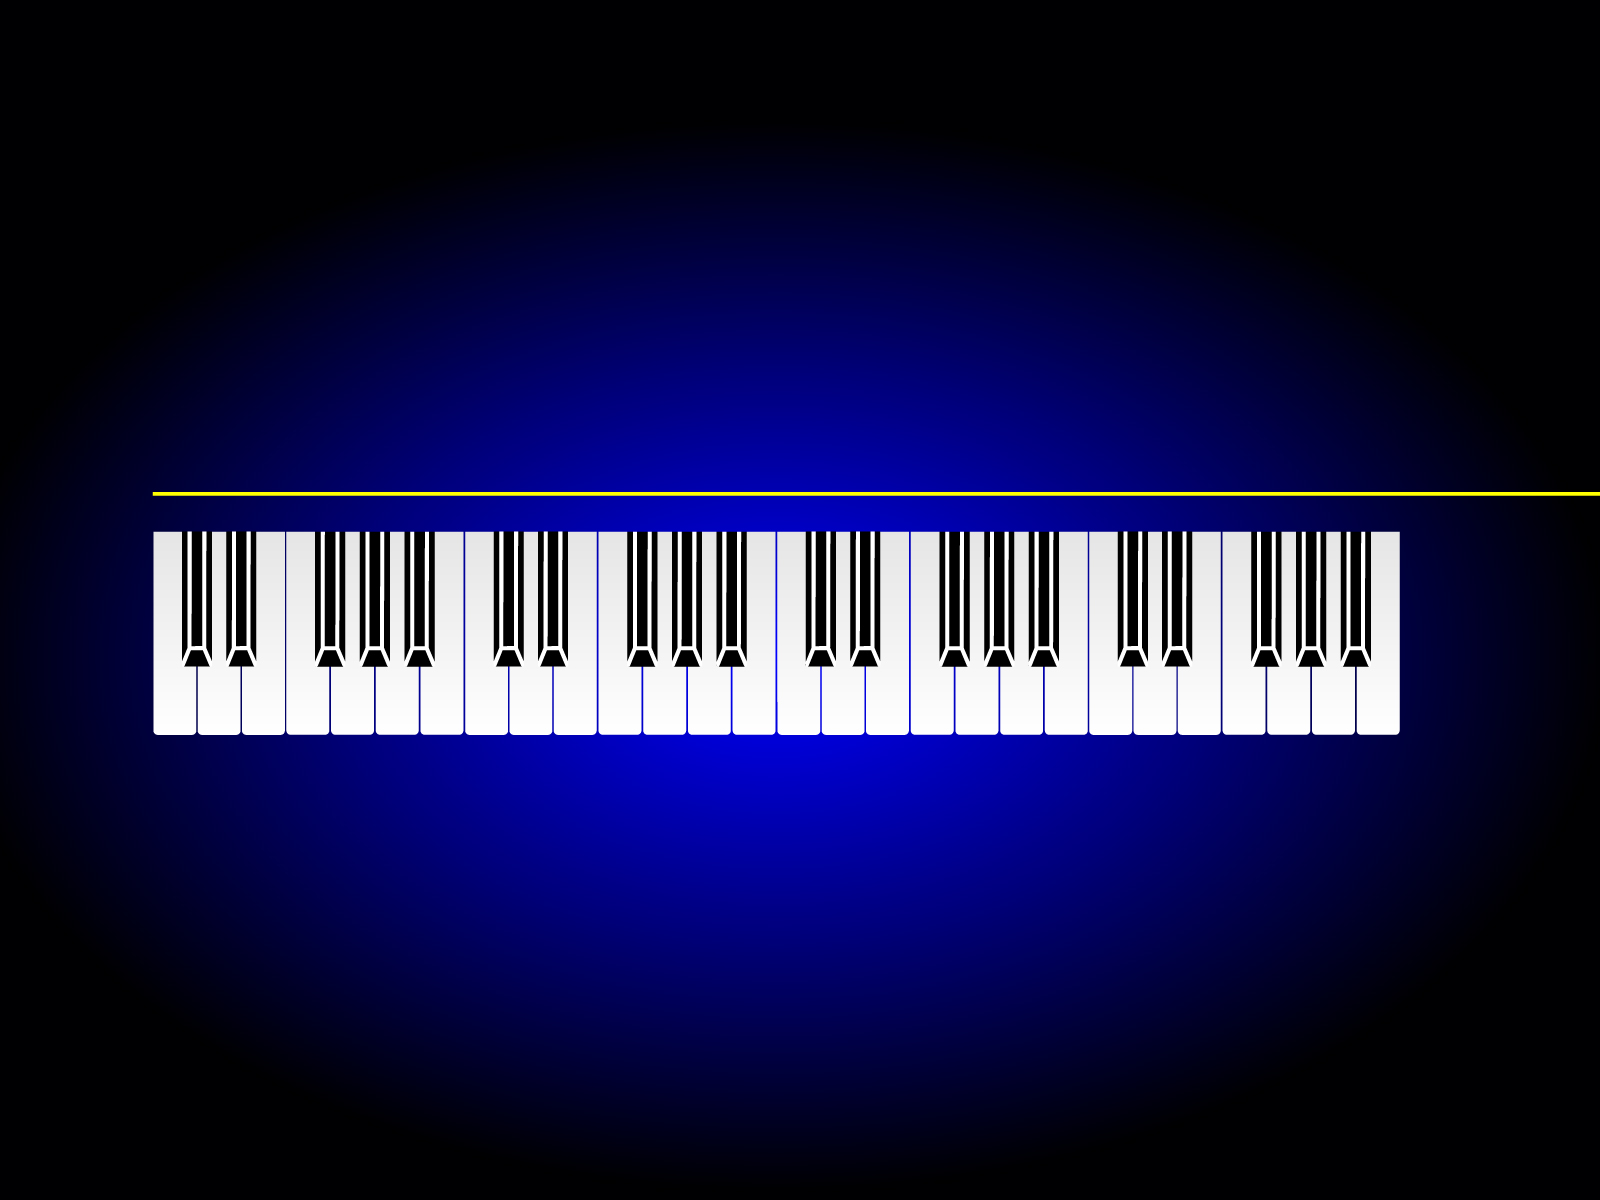 Music Piano Bar Powerpoint Backgrounds